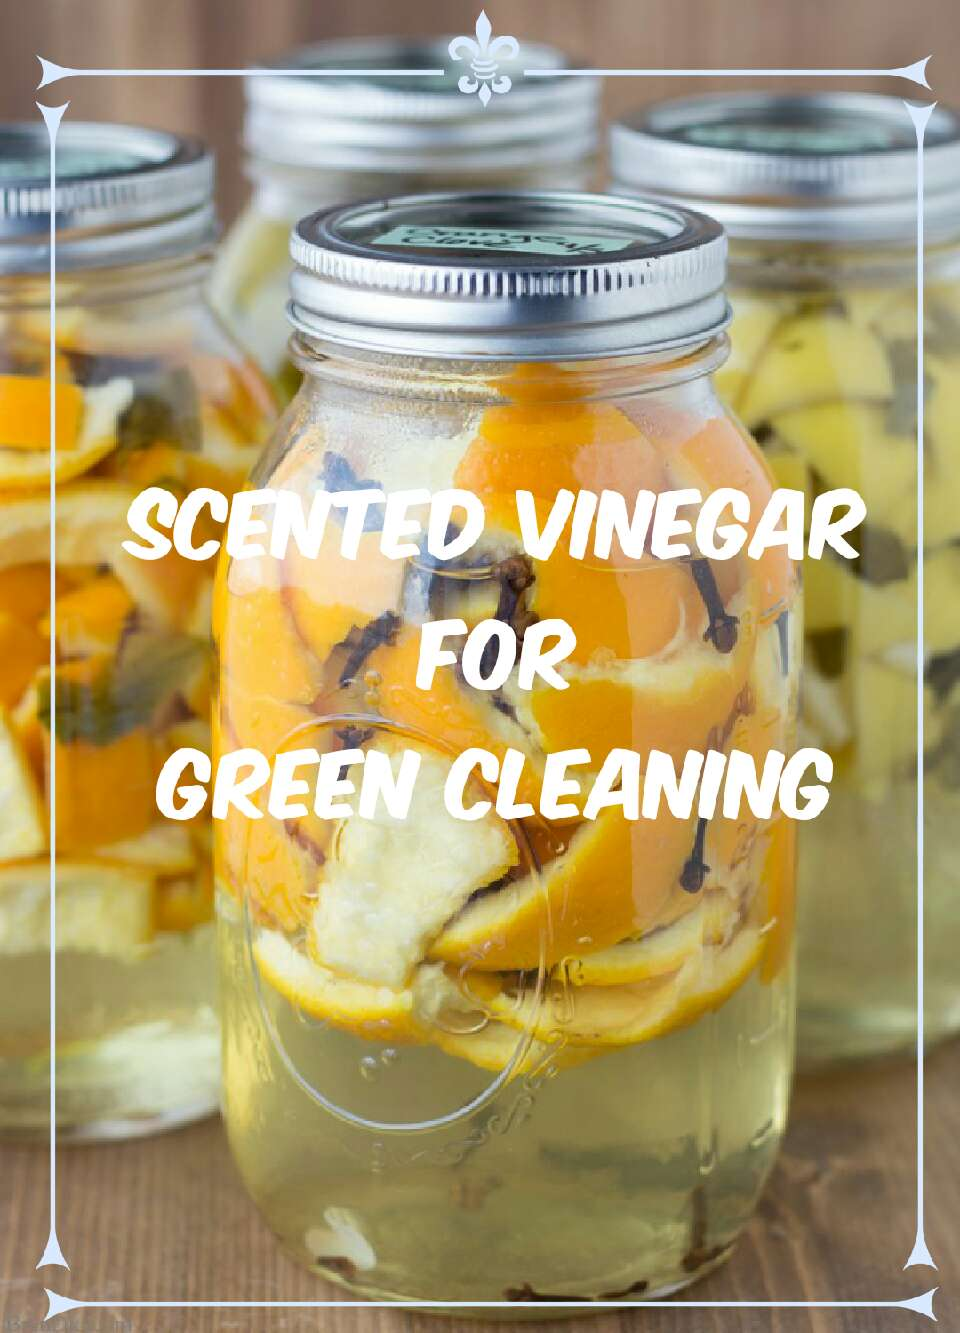 Scented Vinegar for Green Cleaning